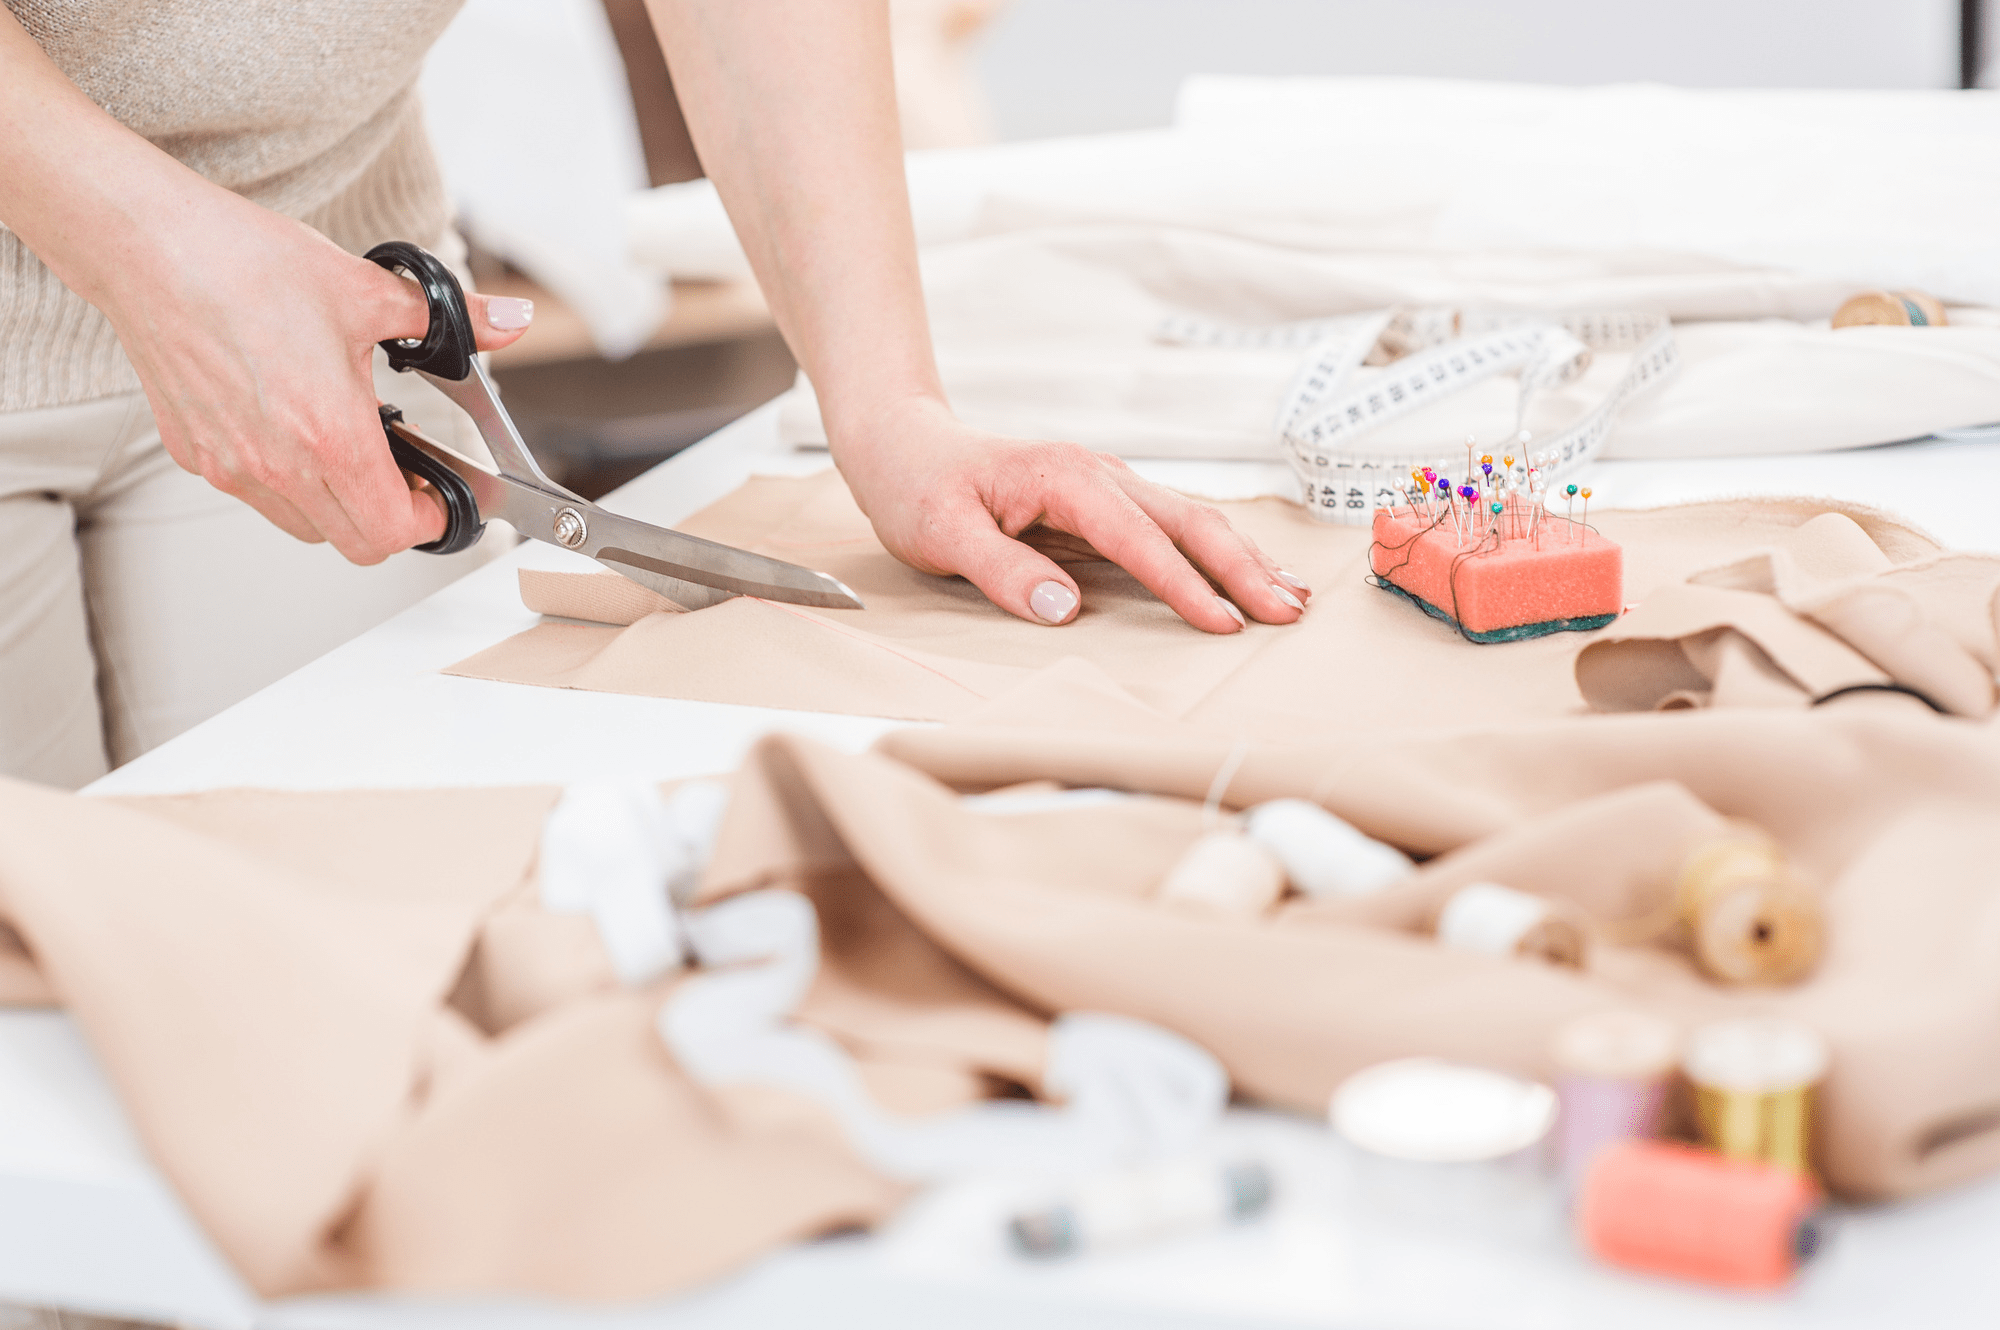 A Beginner's Guide to Sewing Your Own Clothes